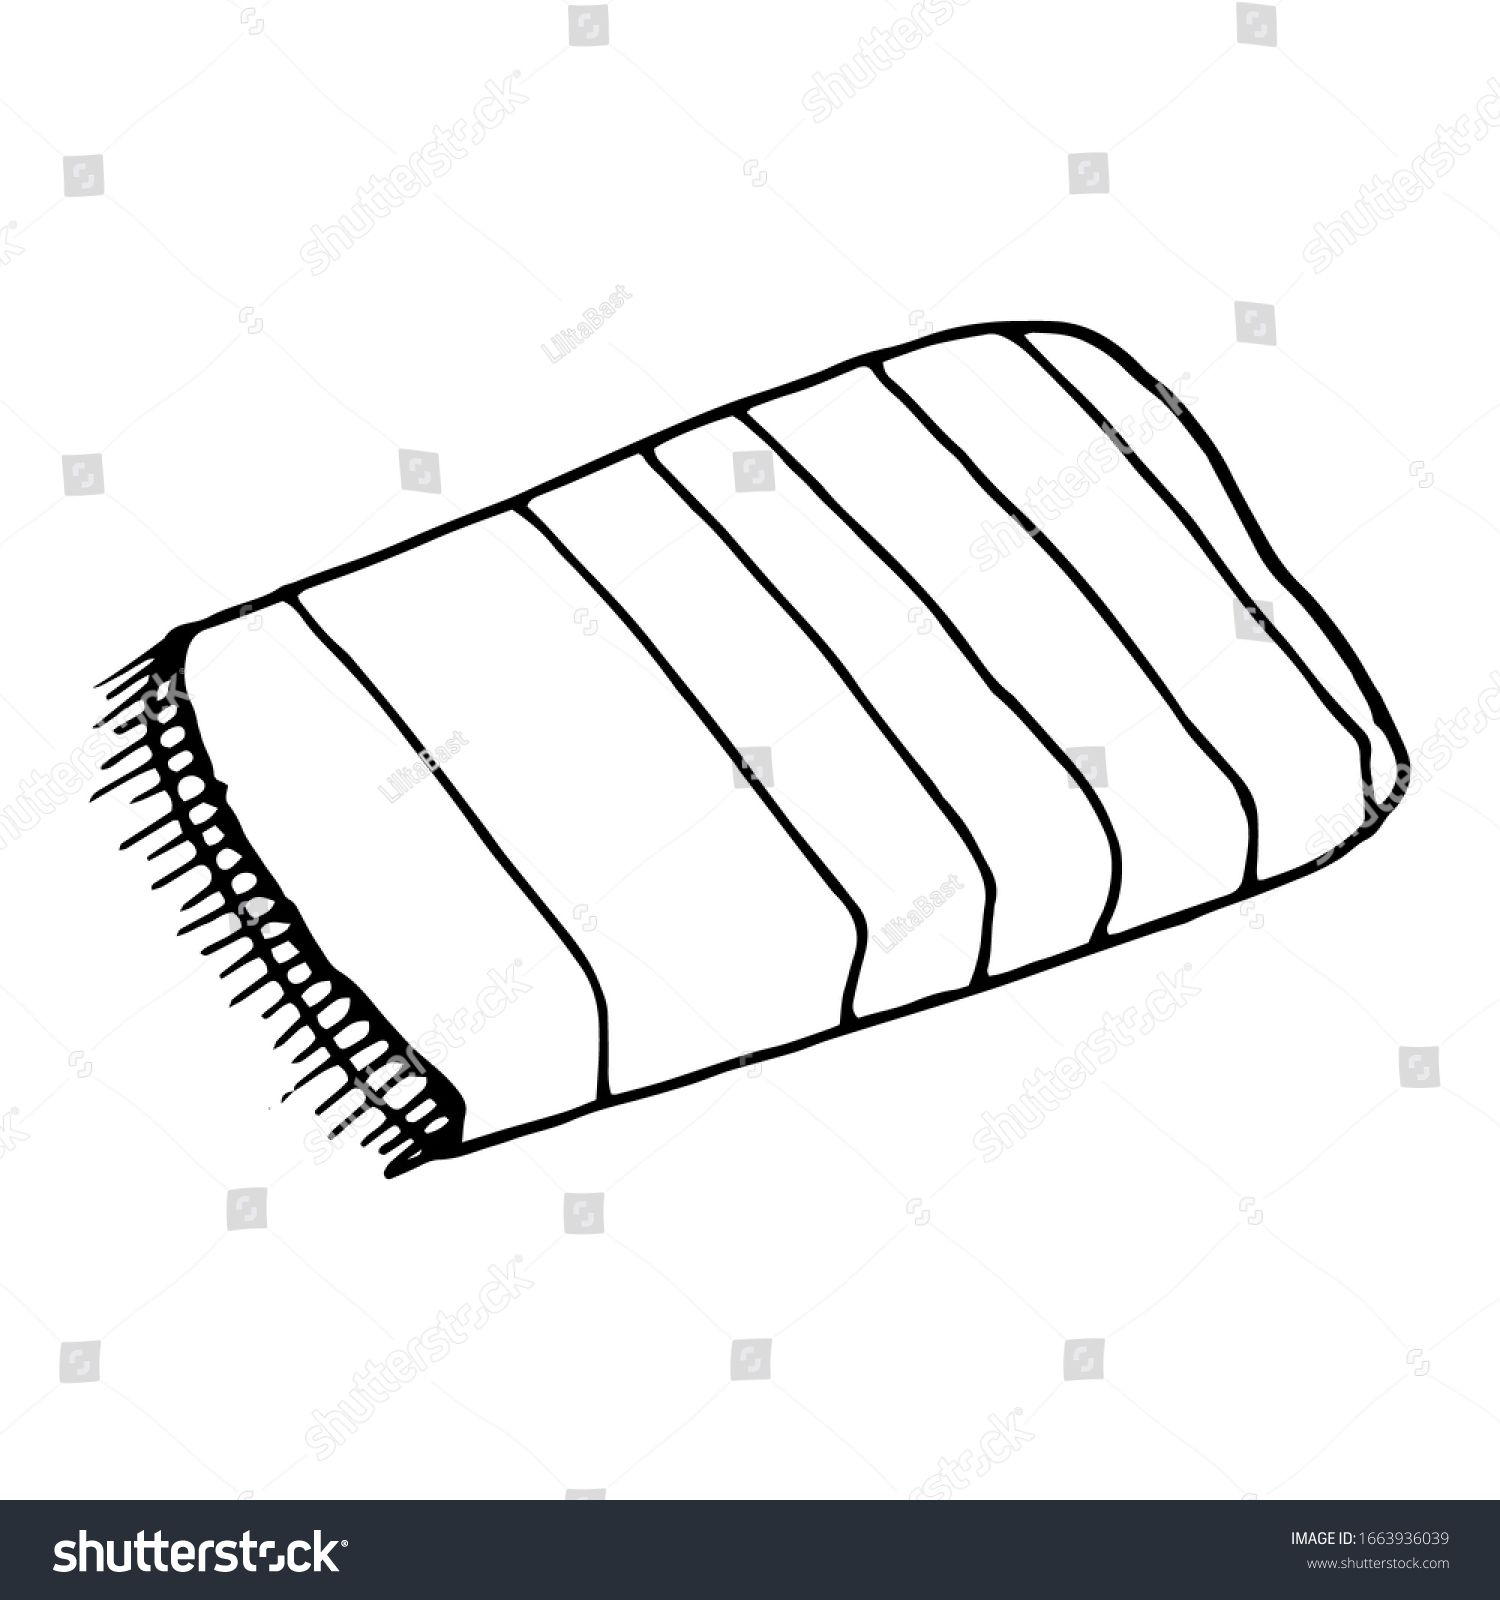 Towel Cartoon Vector And Illustration Black And White Hand Drawn Sketch Style Isolated On White Background A Cartoons Vector Black And White Illustration